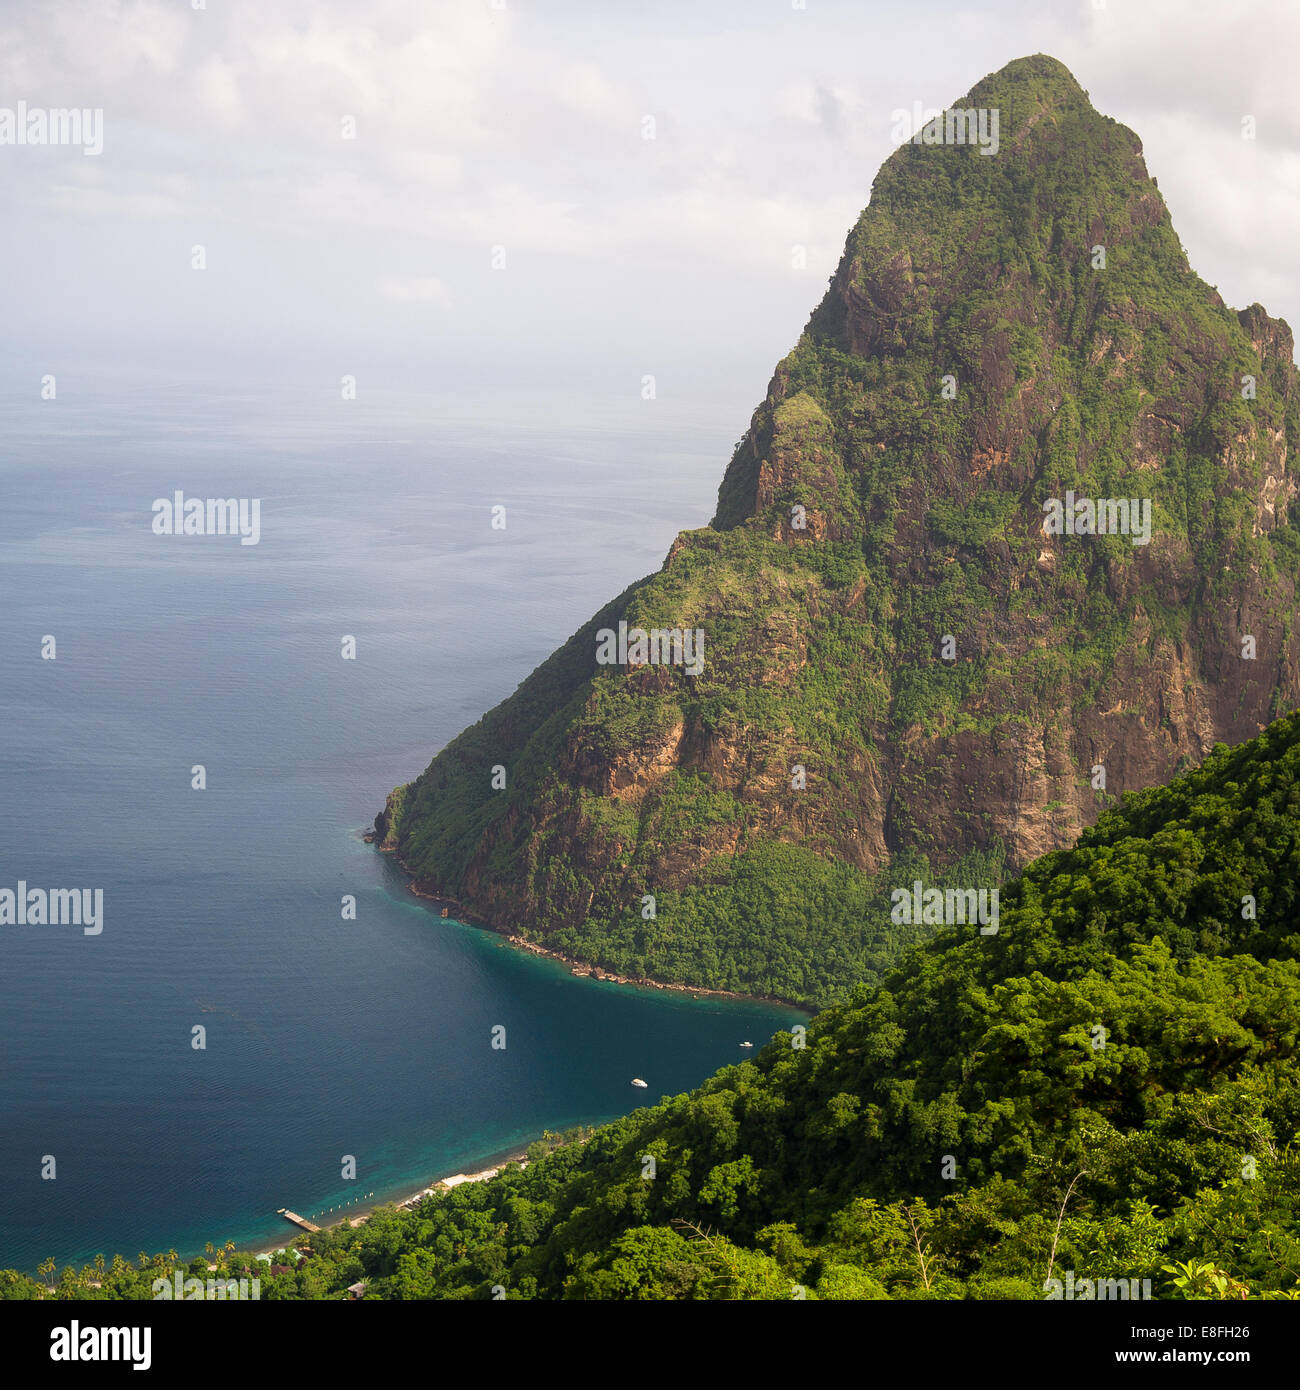 Petit Piton seen from Tete Paul hiking trail, St Lucia, Caribbean - Stock Image